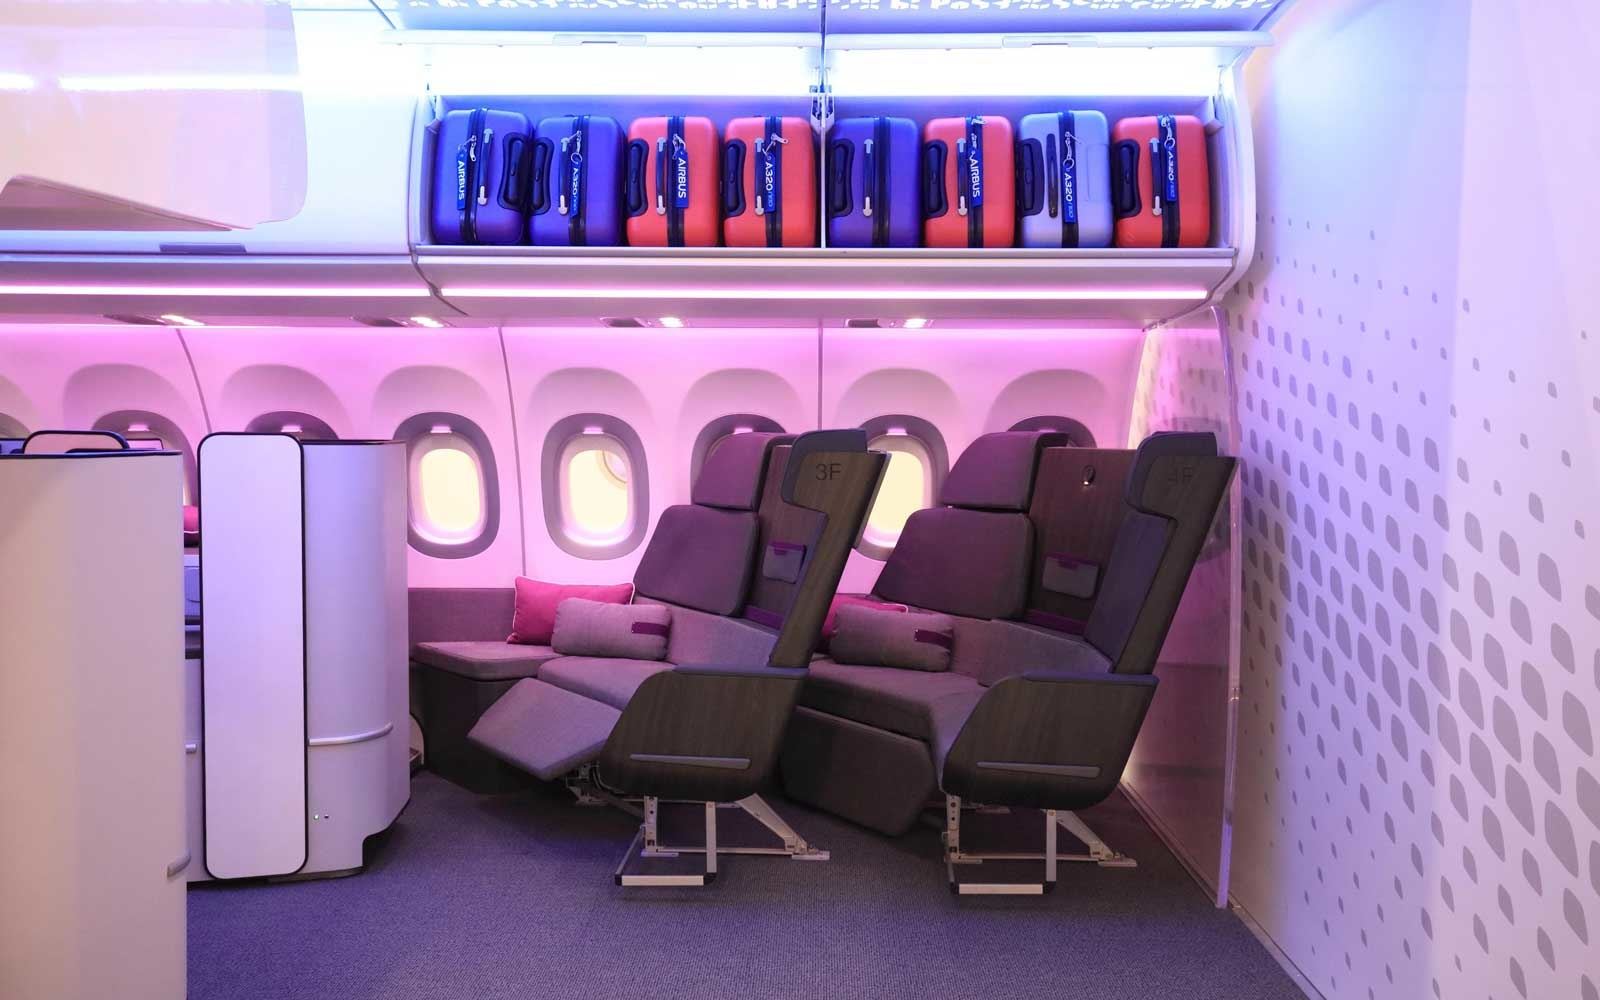 Airbus Reveals New Couch-style Airplane Seats so Travelers Can Kick Back in Flight